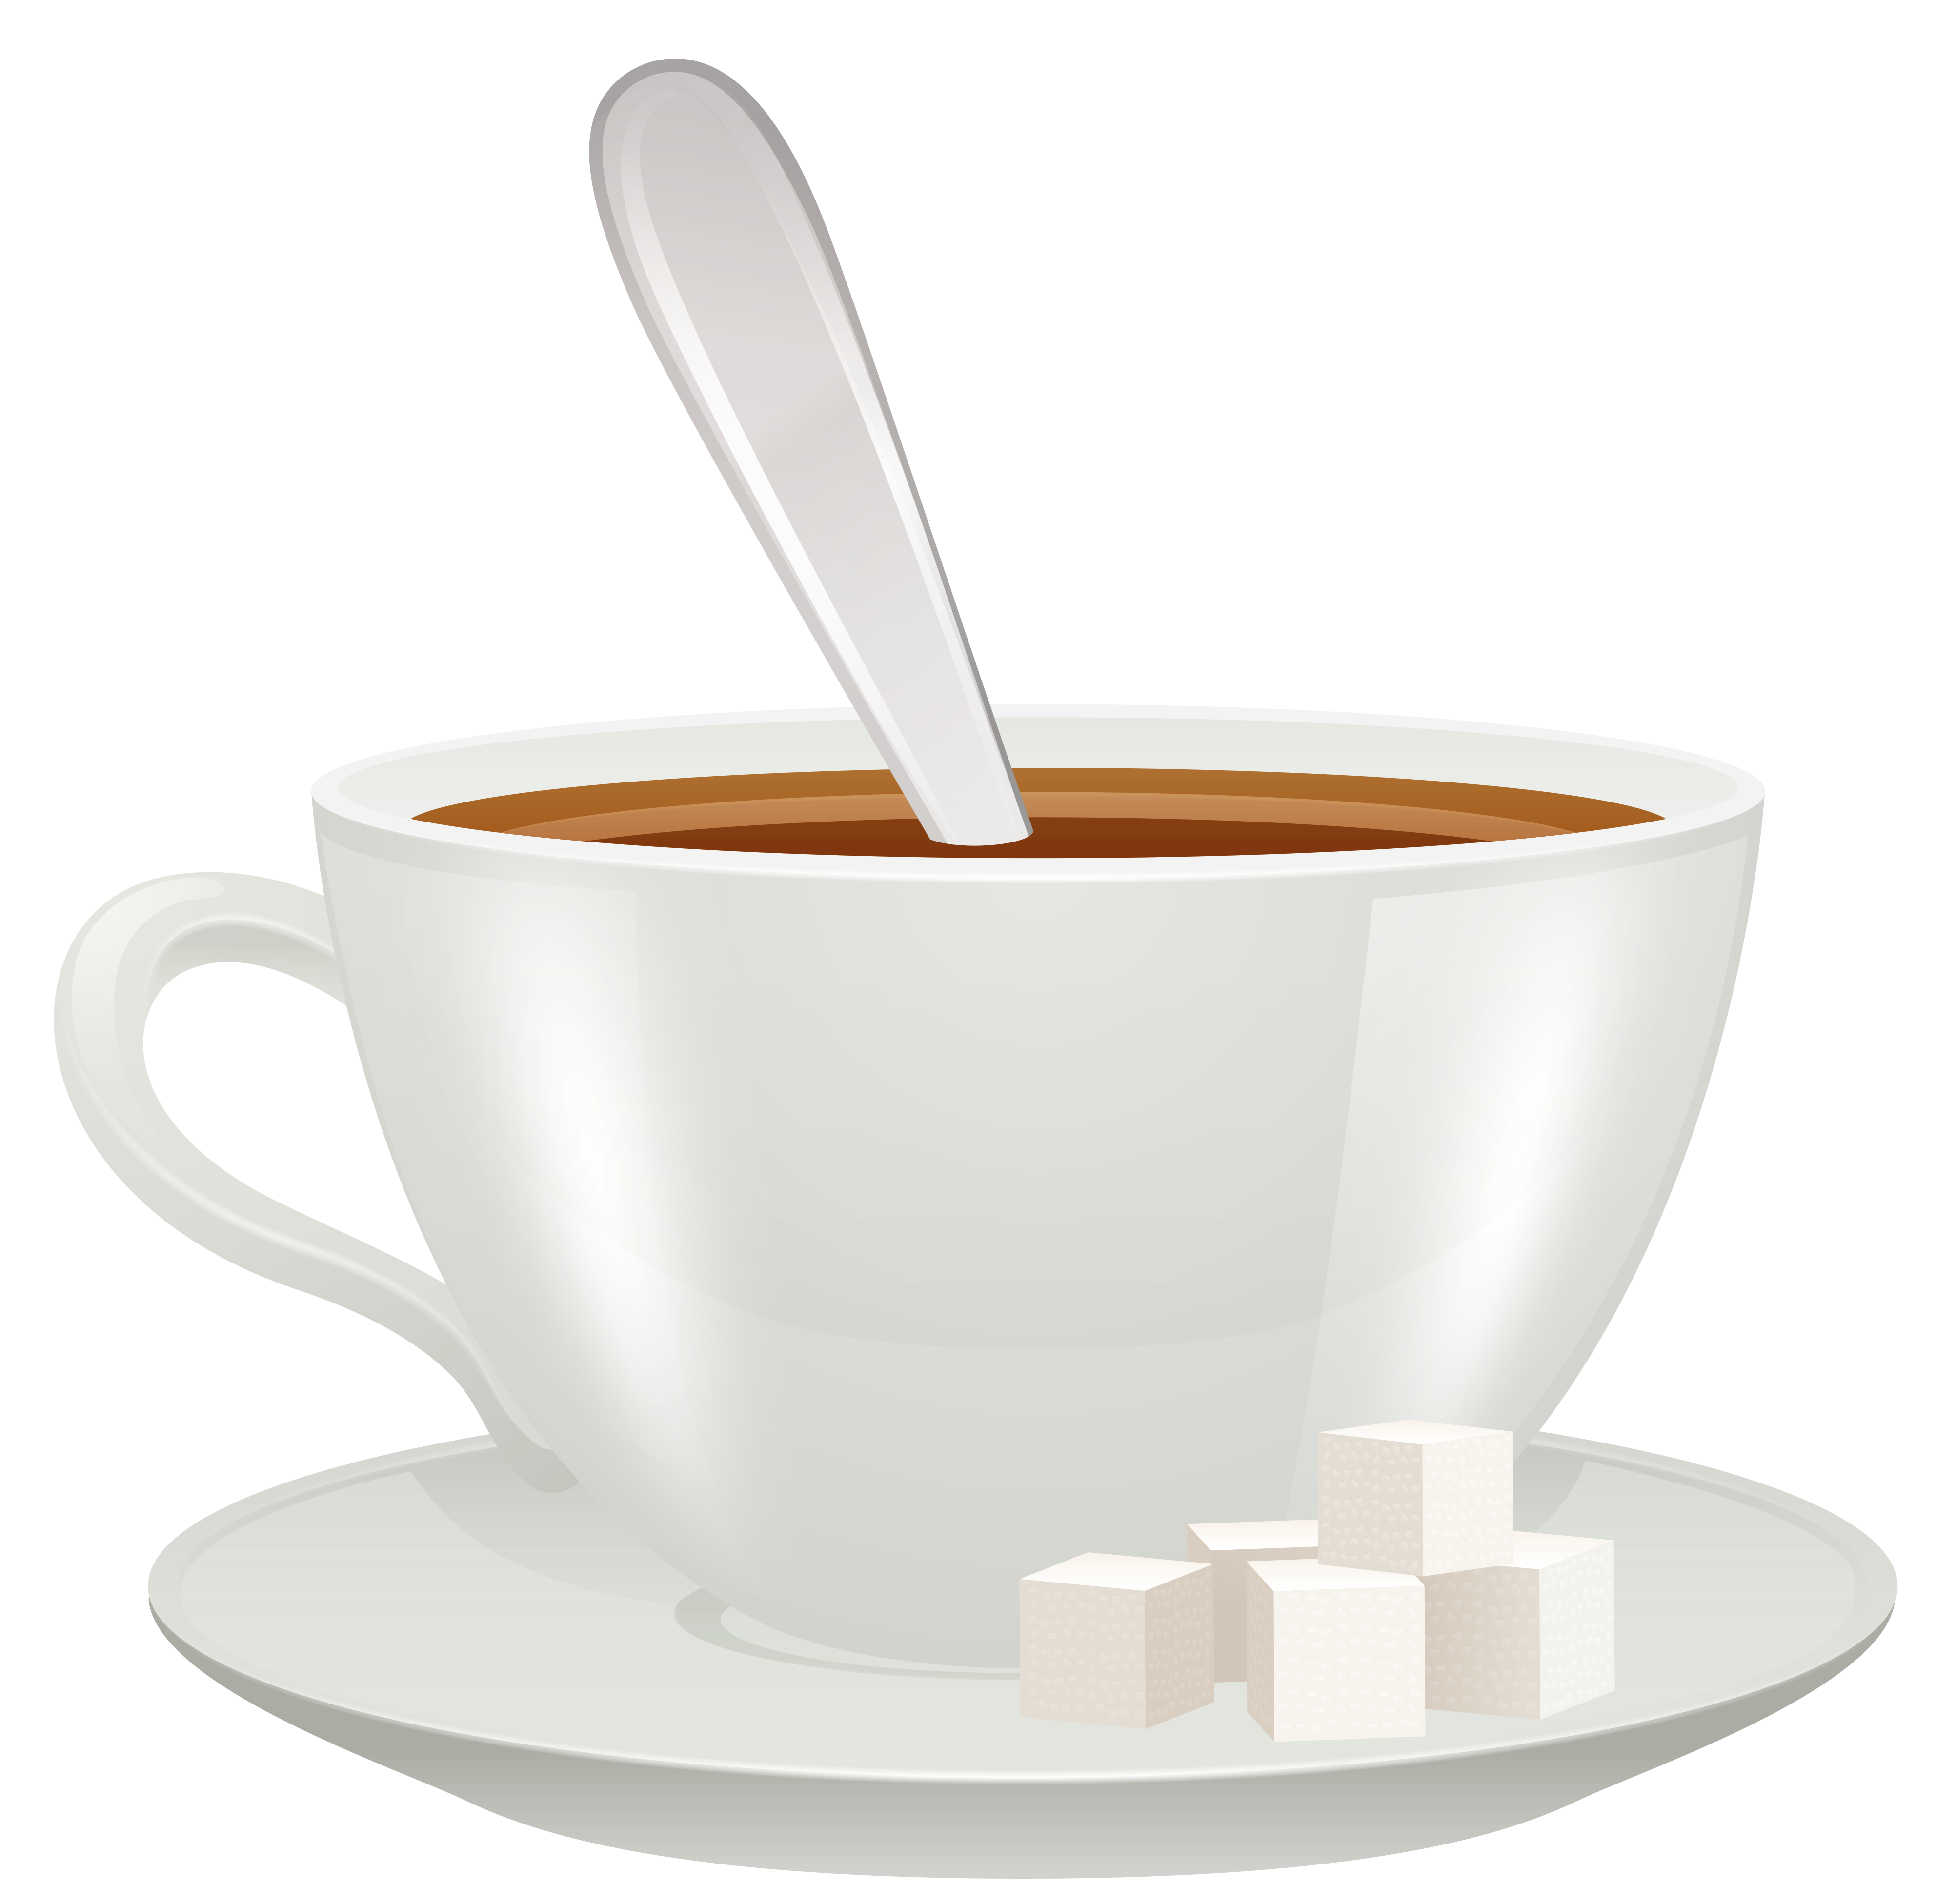 Coffee Cup Png Vector Clipart Png 3968 3903